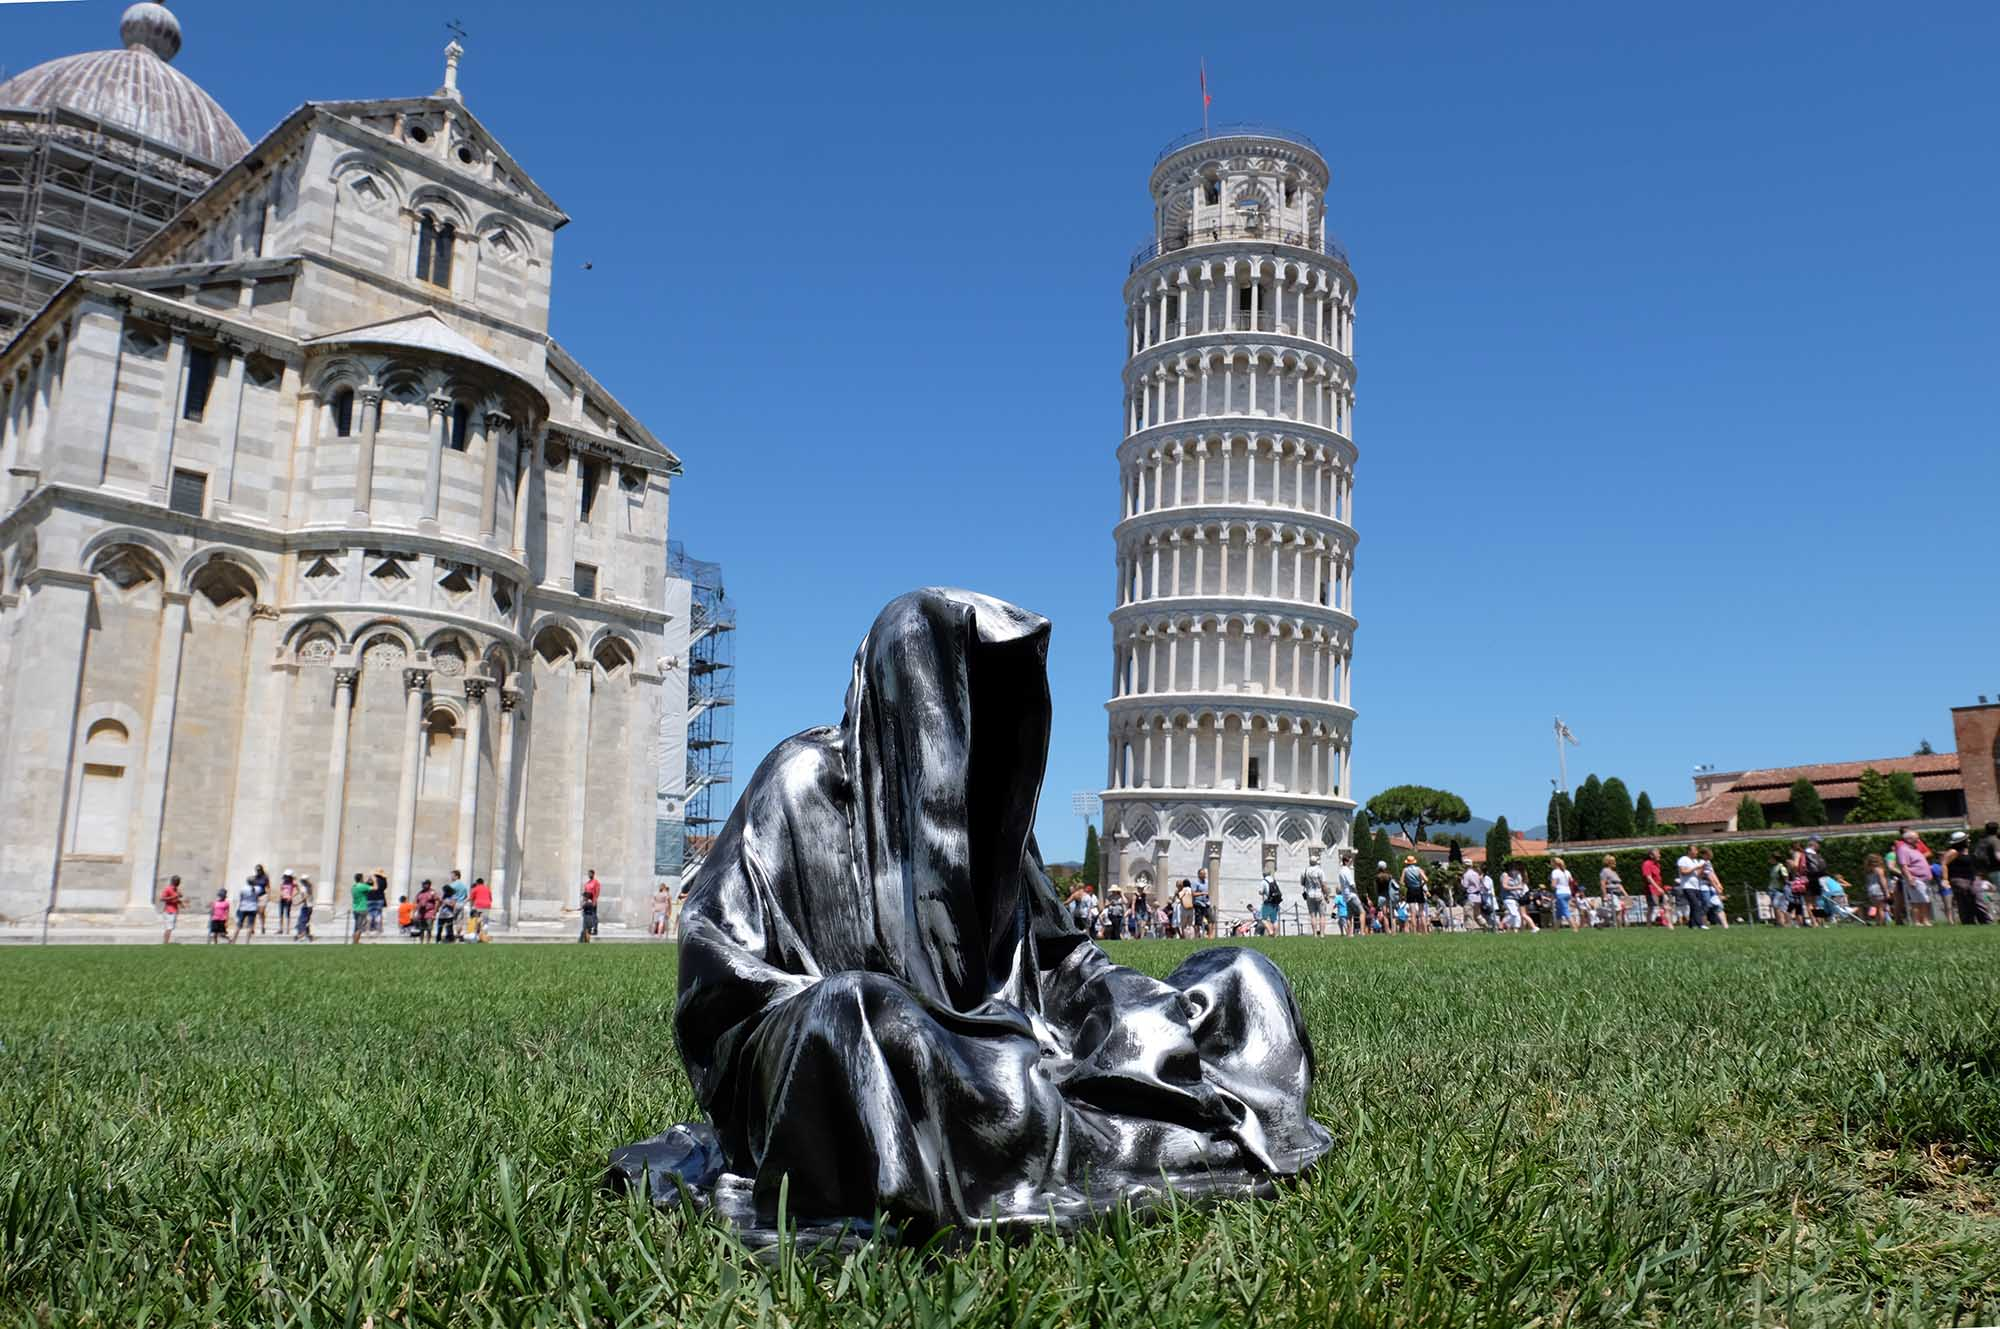 leaning tower of pisa italia guardians of time manfred kielnhofer contemporary fine art modern statue exclusive arts sculpture 3439